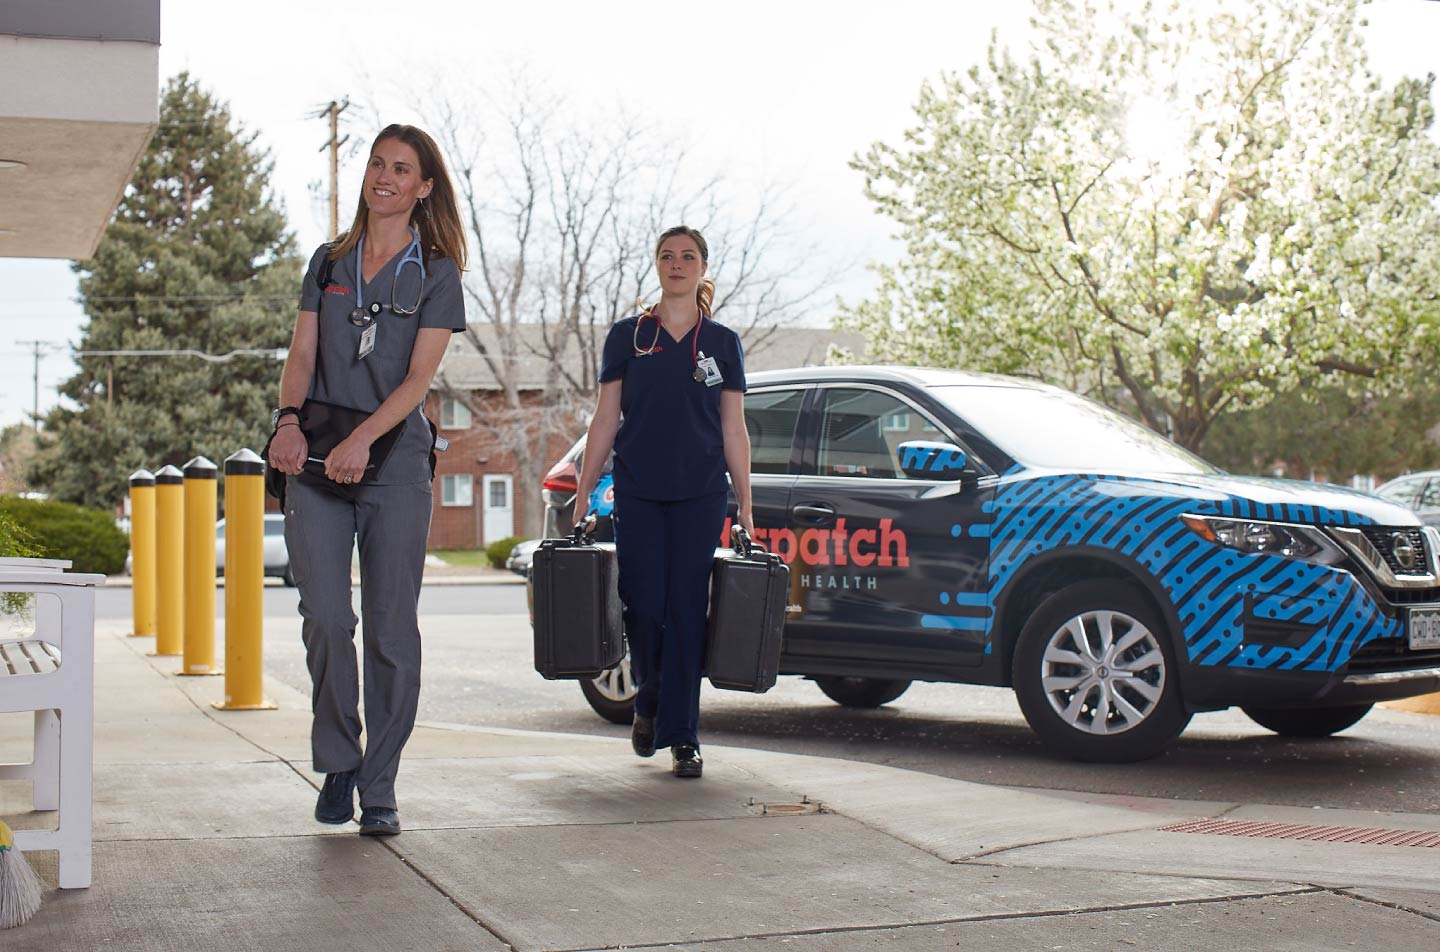 Orchard Partners with DispatchHealth to Manage POCT for In-home Care